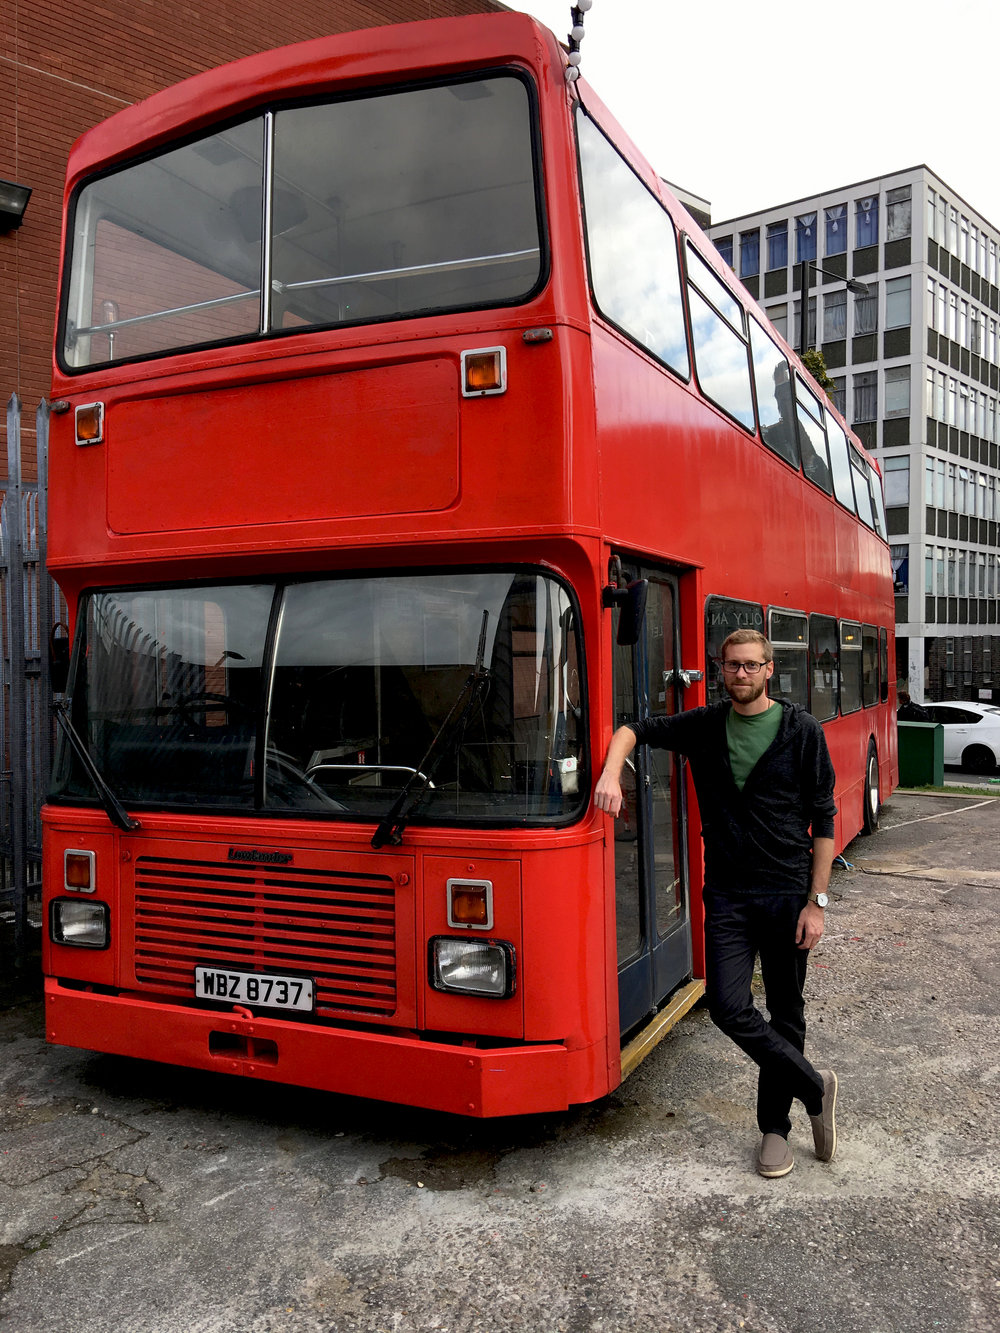 An old, decommissioned bus set to be converted into a cafe at  Blue House Yard .